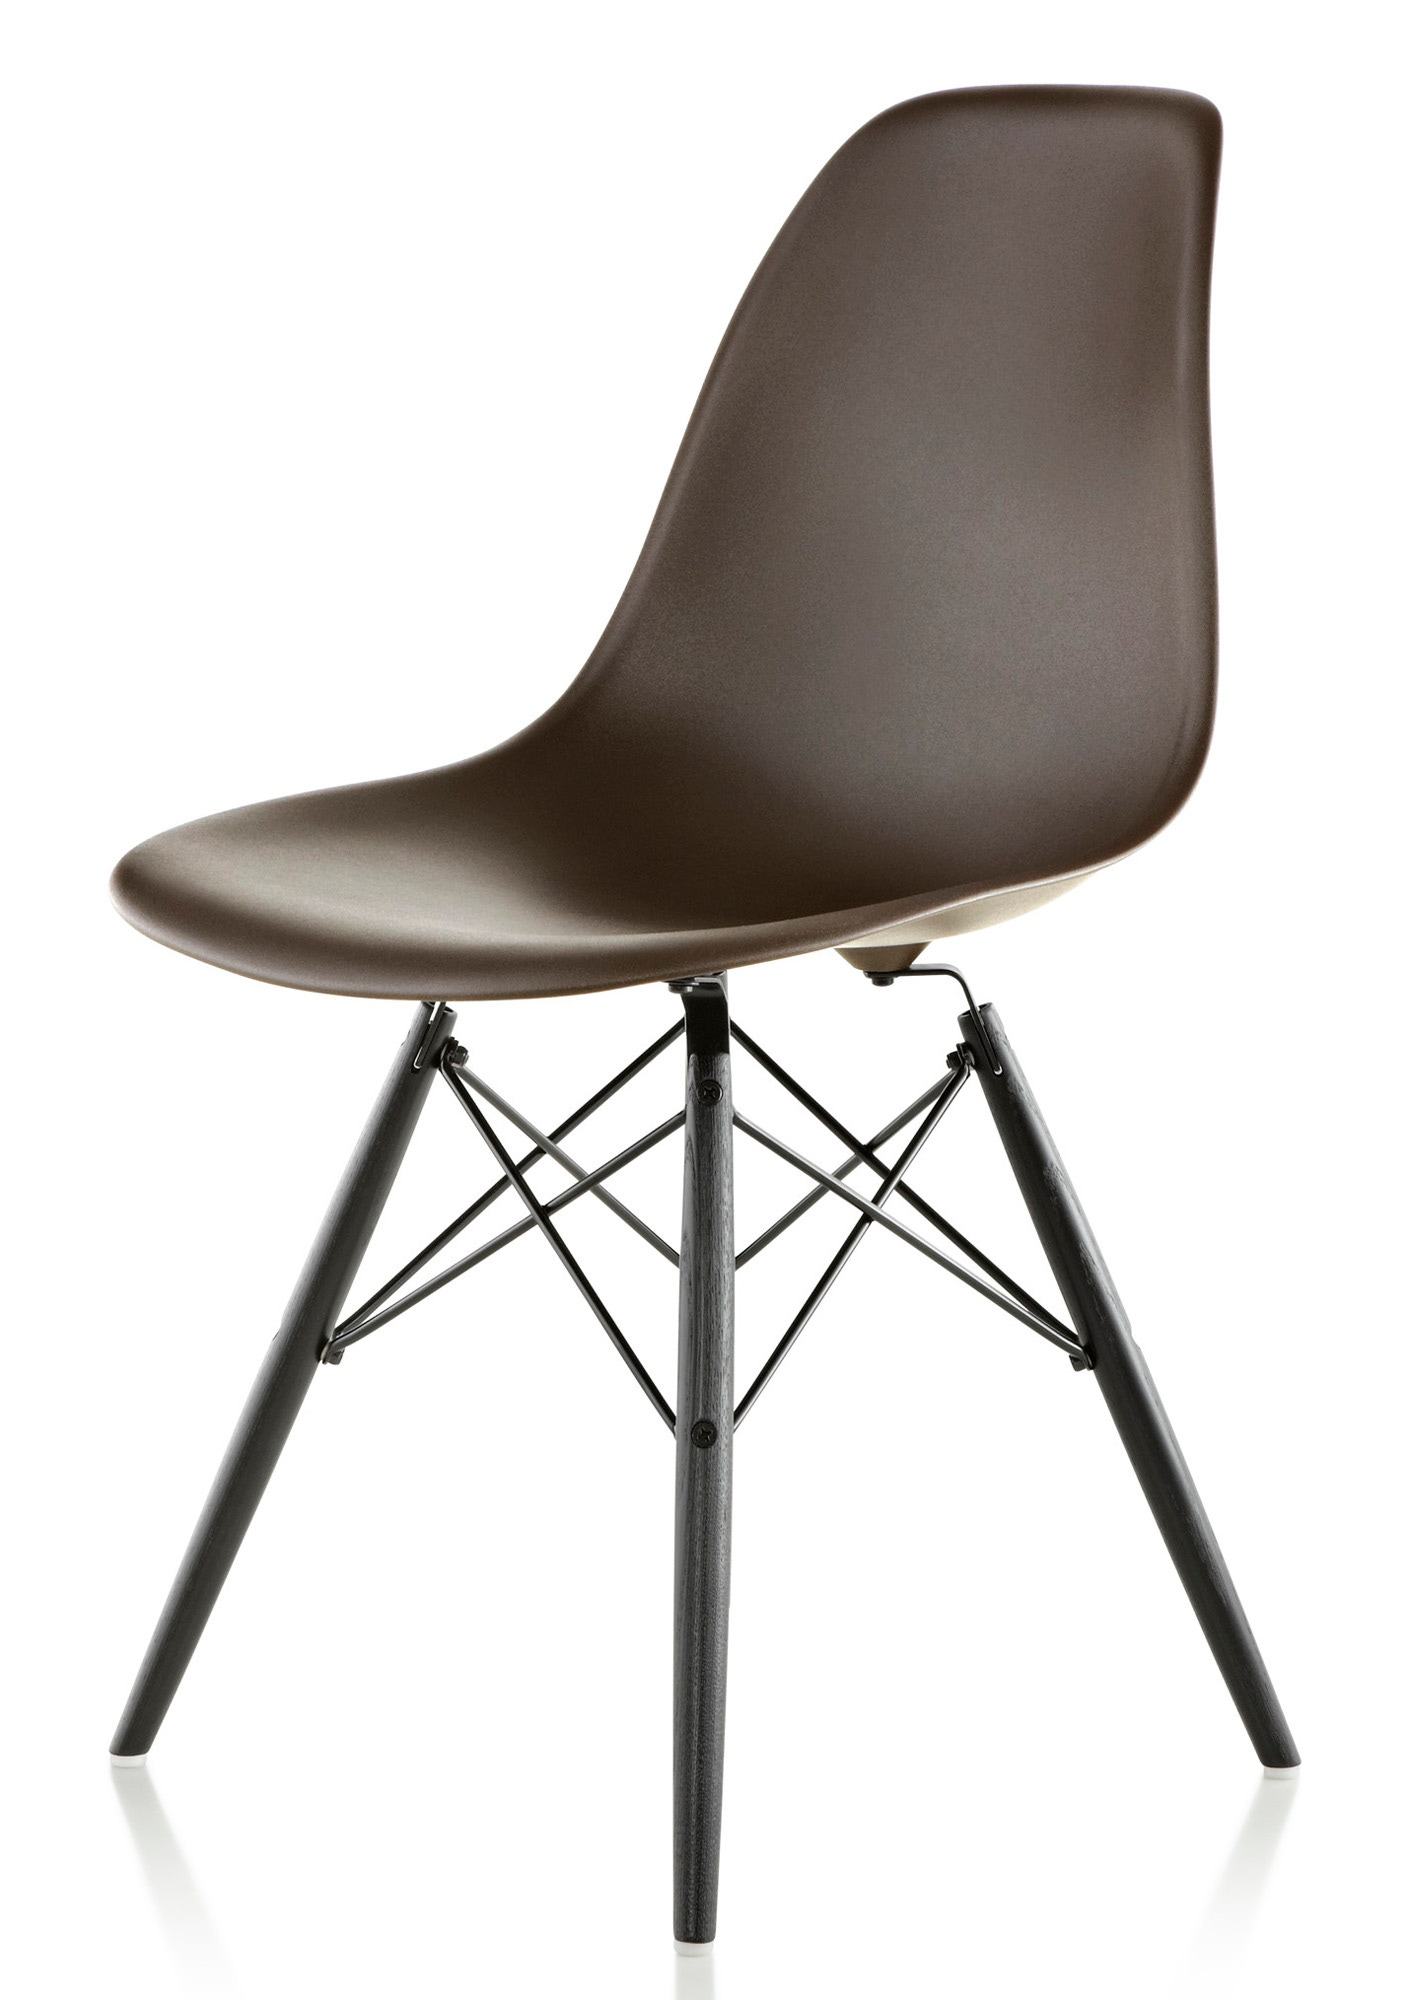 herman miller eames molded plastic side chair gr shop canada. Black Bedroom Furniture Sets. Home Design Ideas